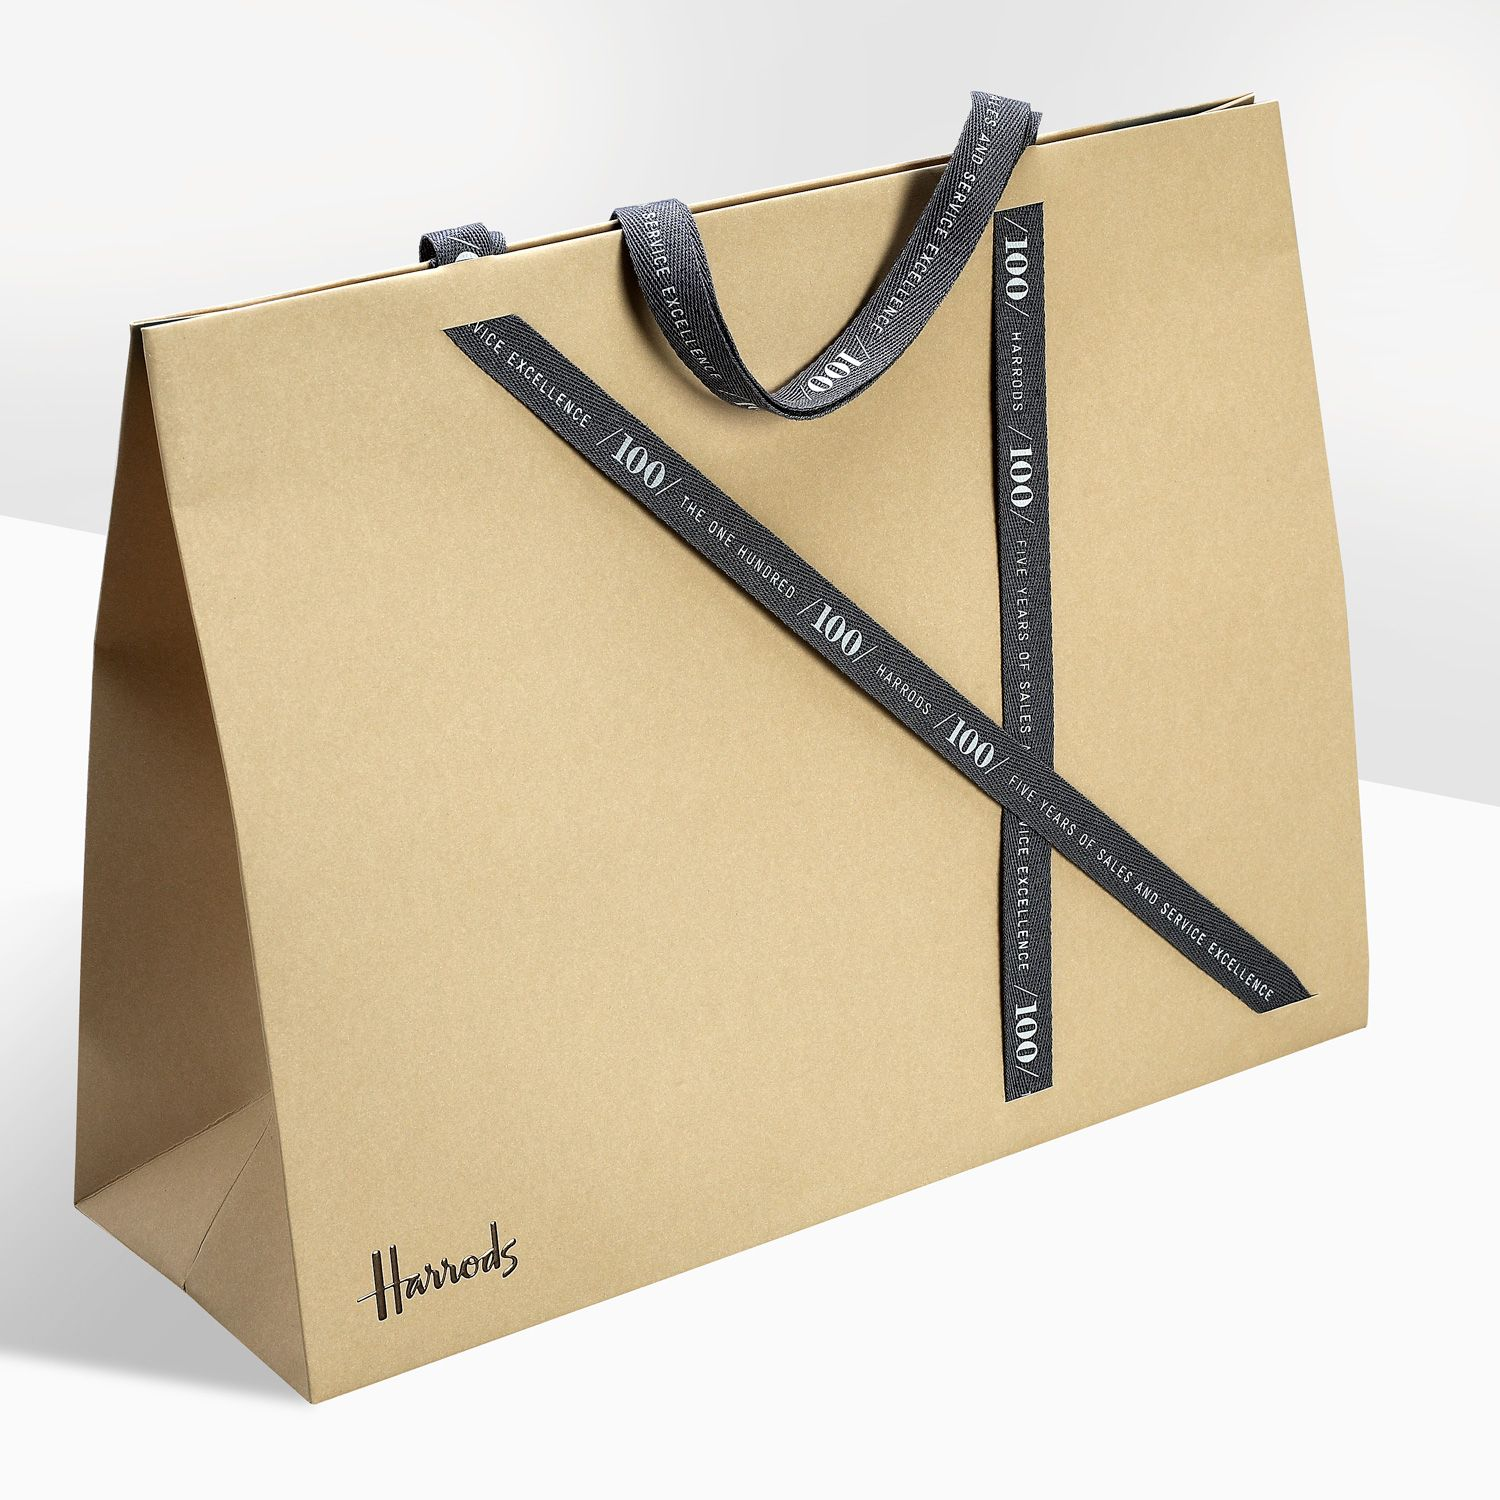 c087517301b3 Progress Packaging Made Thought Luxury Retail Carrier | packaging ...